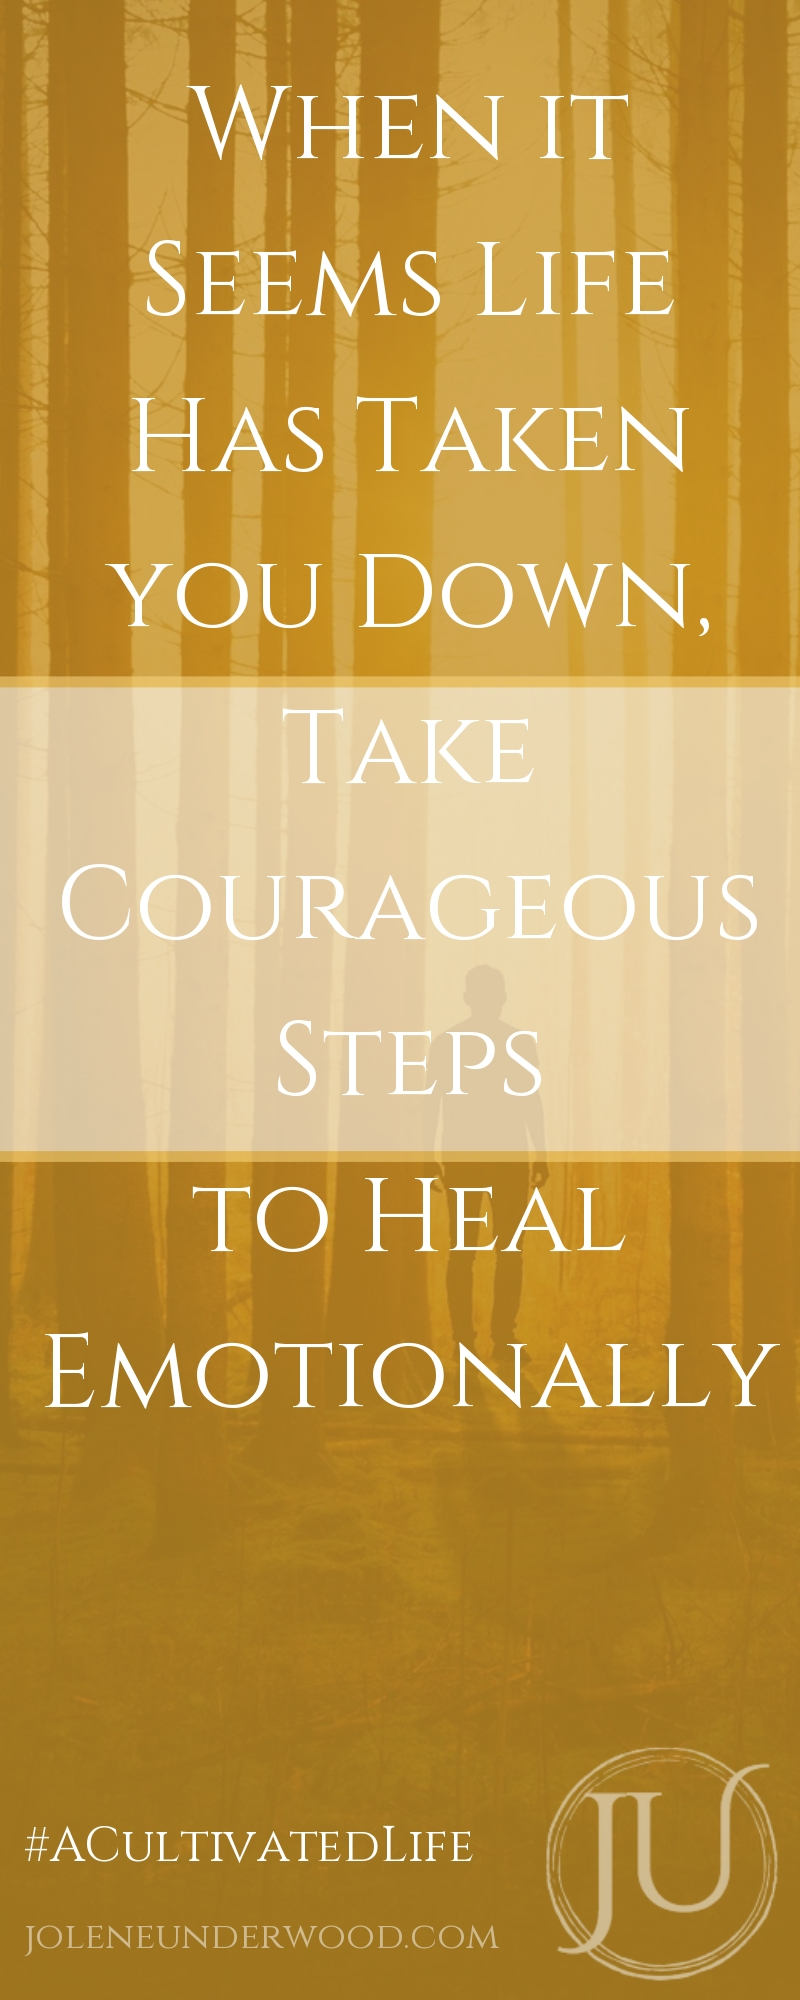 Take Courageous Steps Heal Emotionally